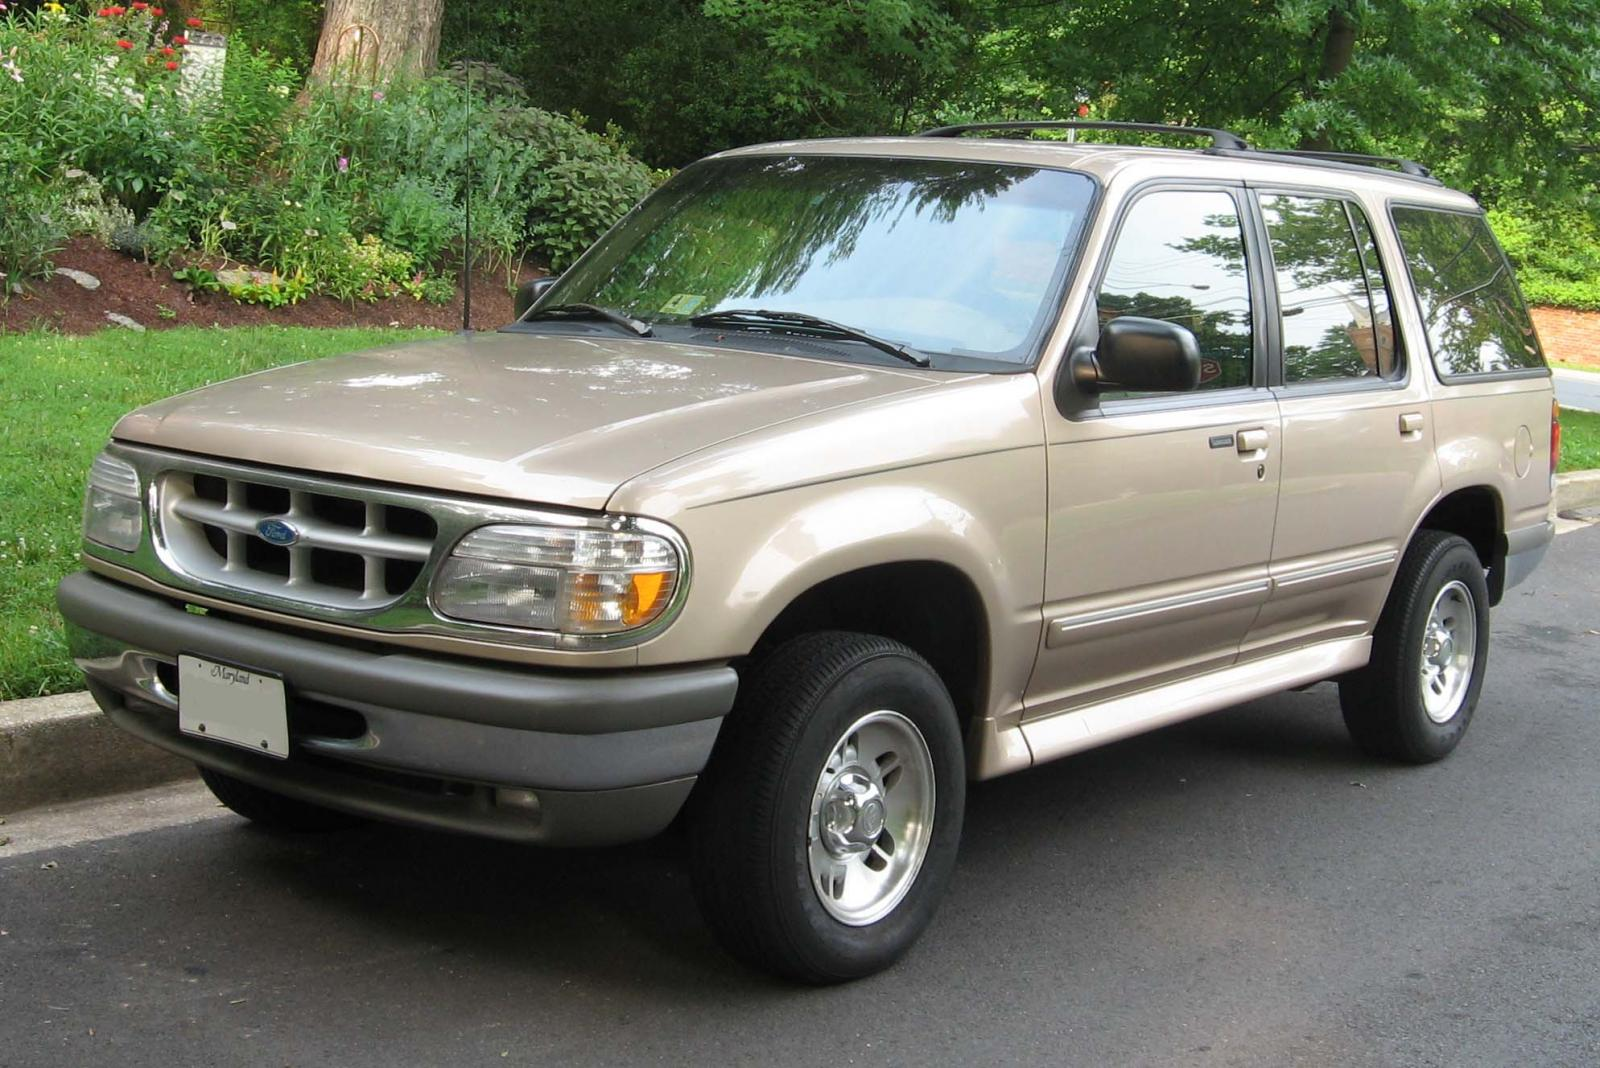 1998 Ford Explorer #4 Ford Explorer #4 800 1024 1280 1600 origin ...